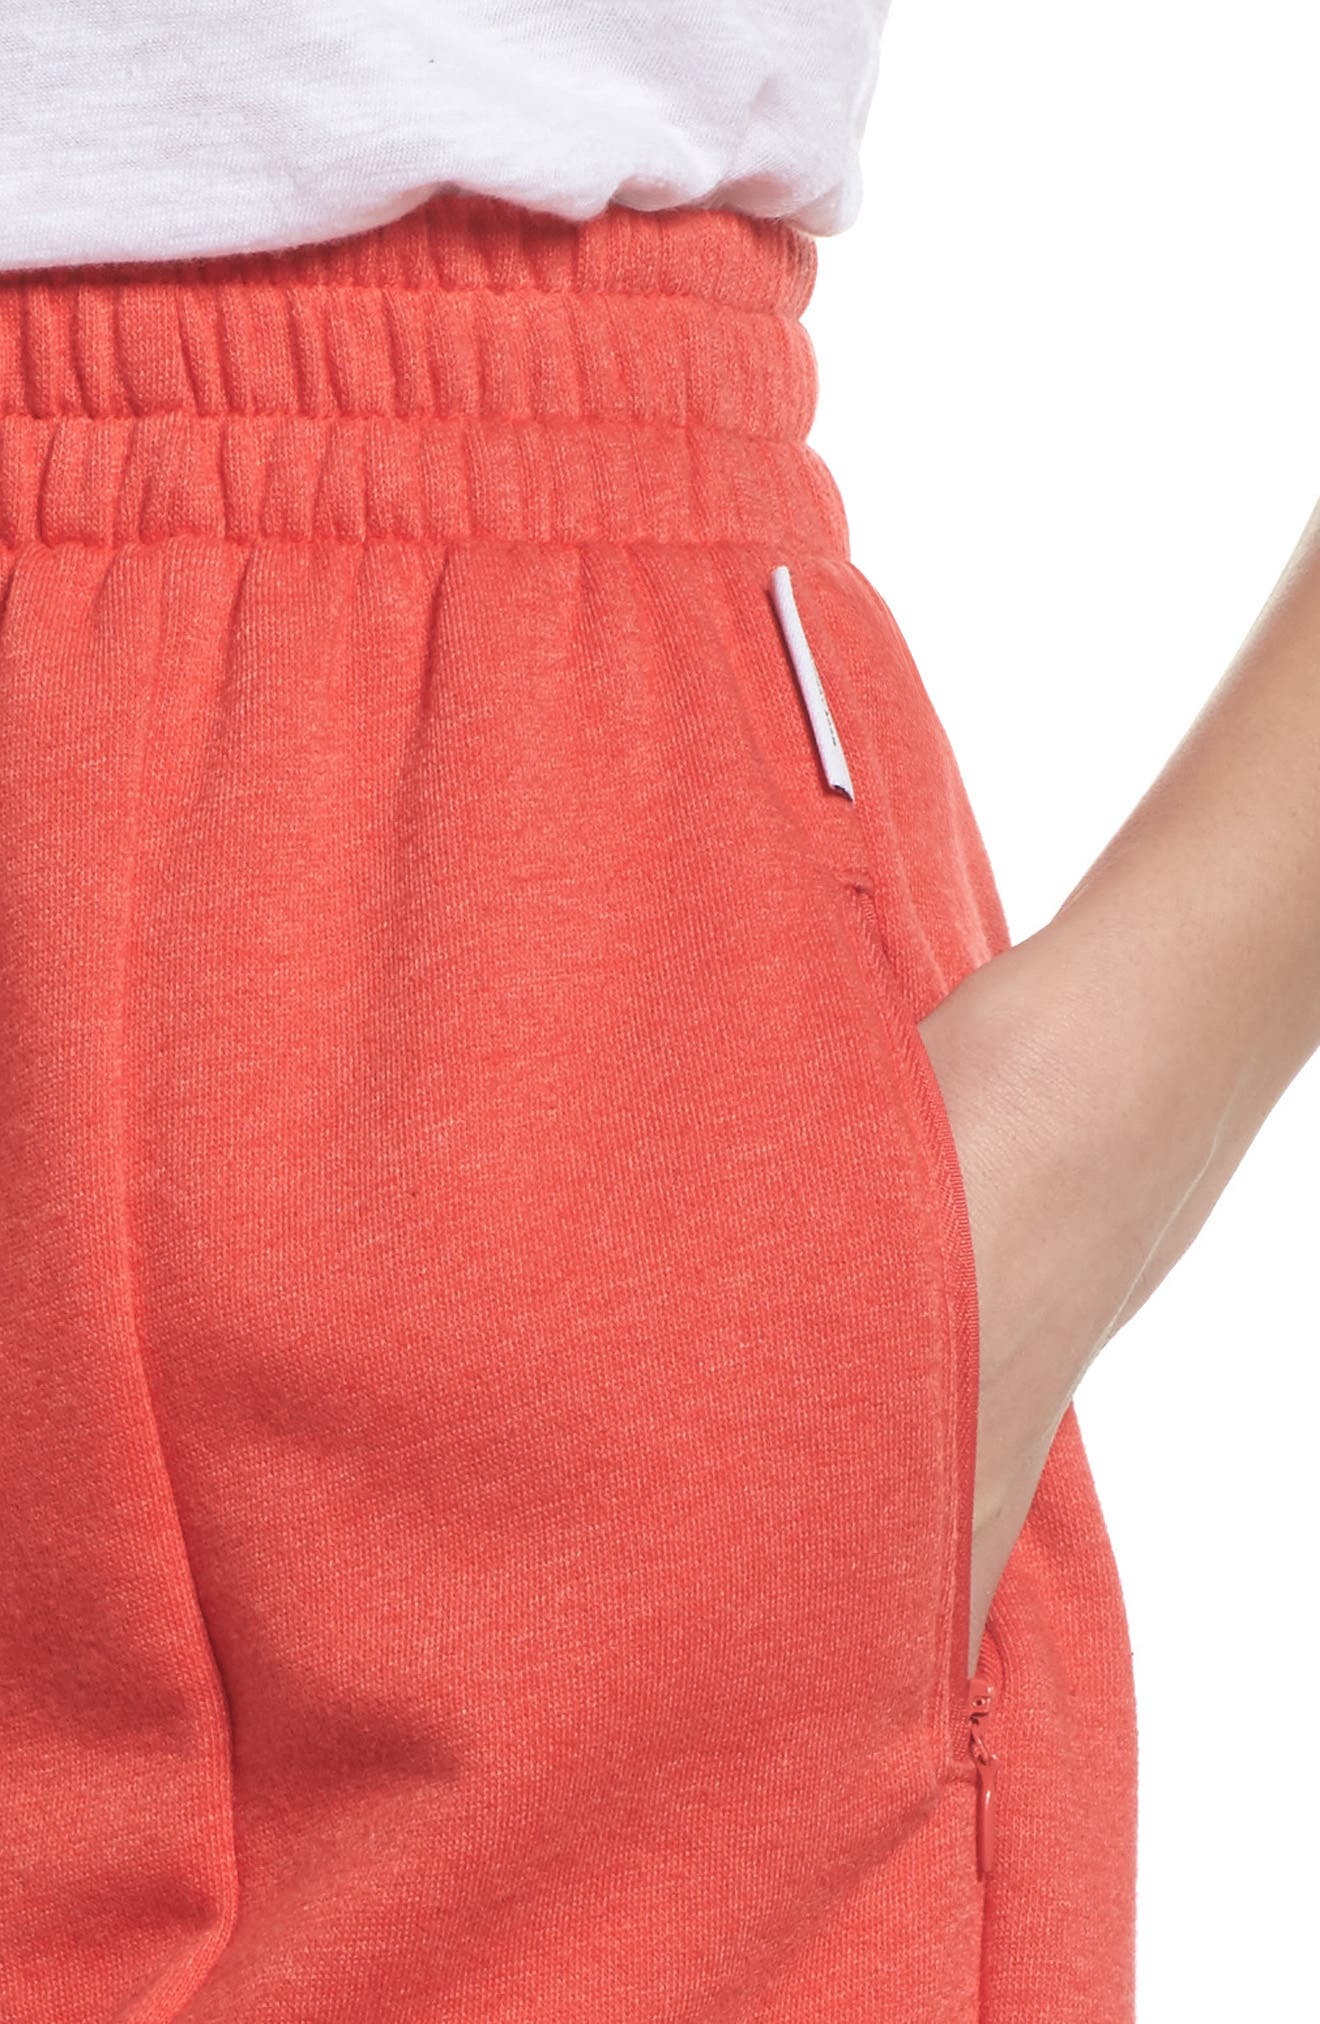 Bermuda Lounge Shorts,                             Alternate thumbnail 4, color,                             Love Red